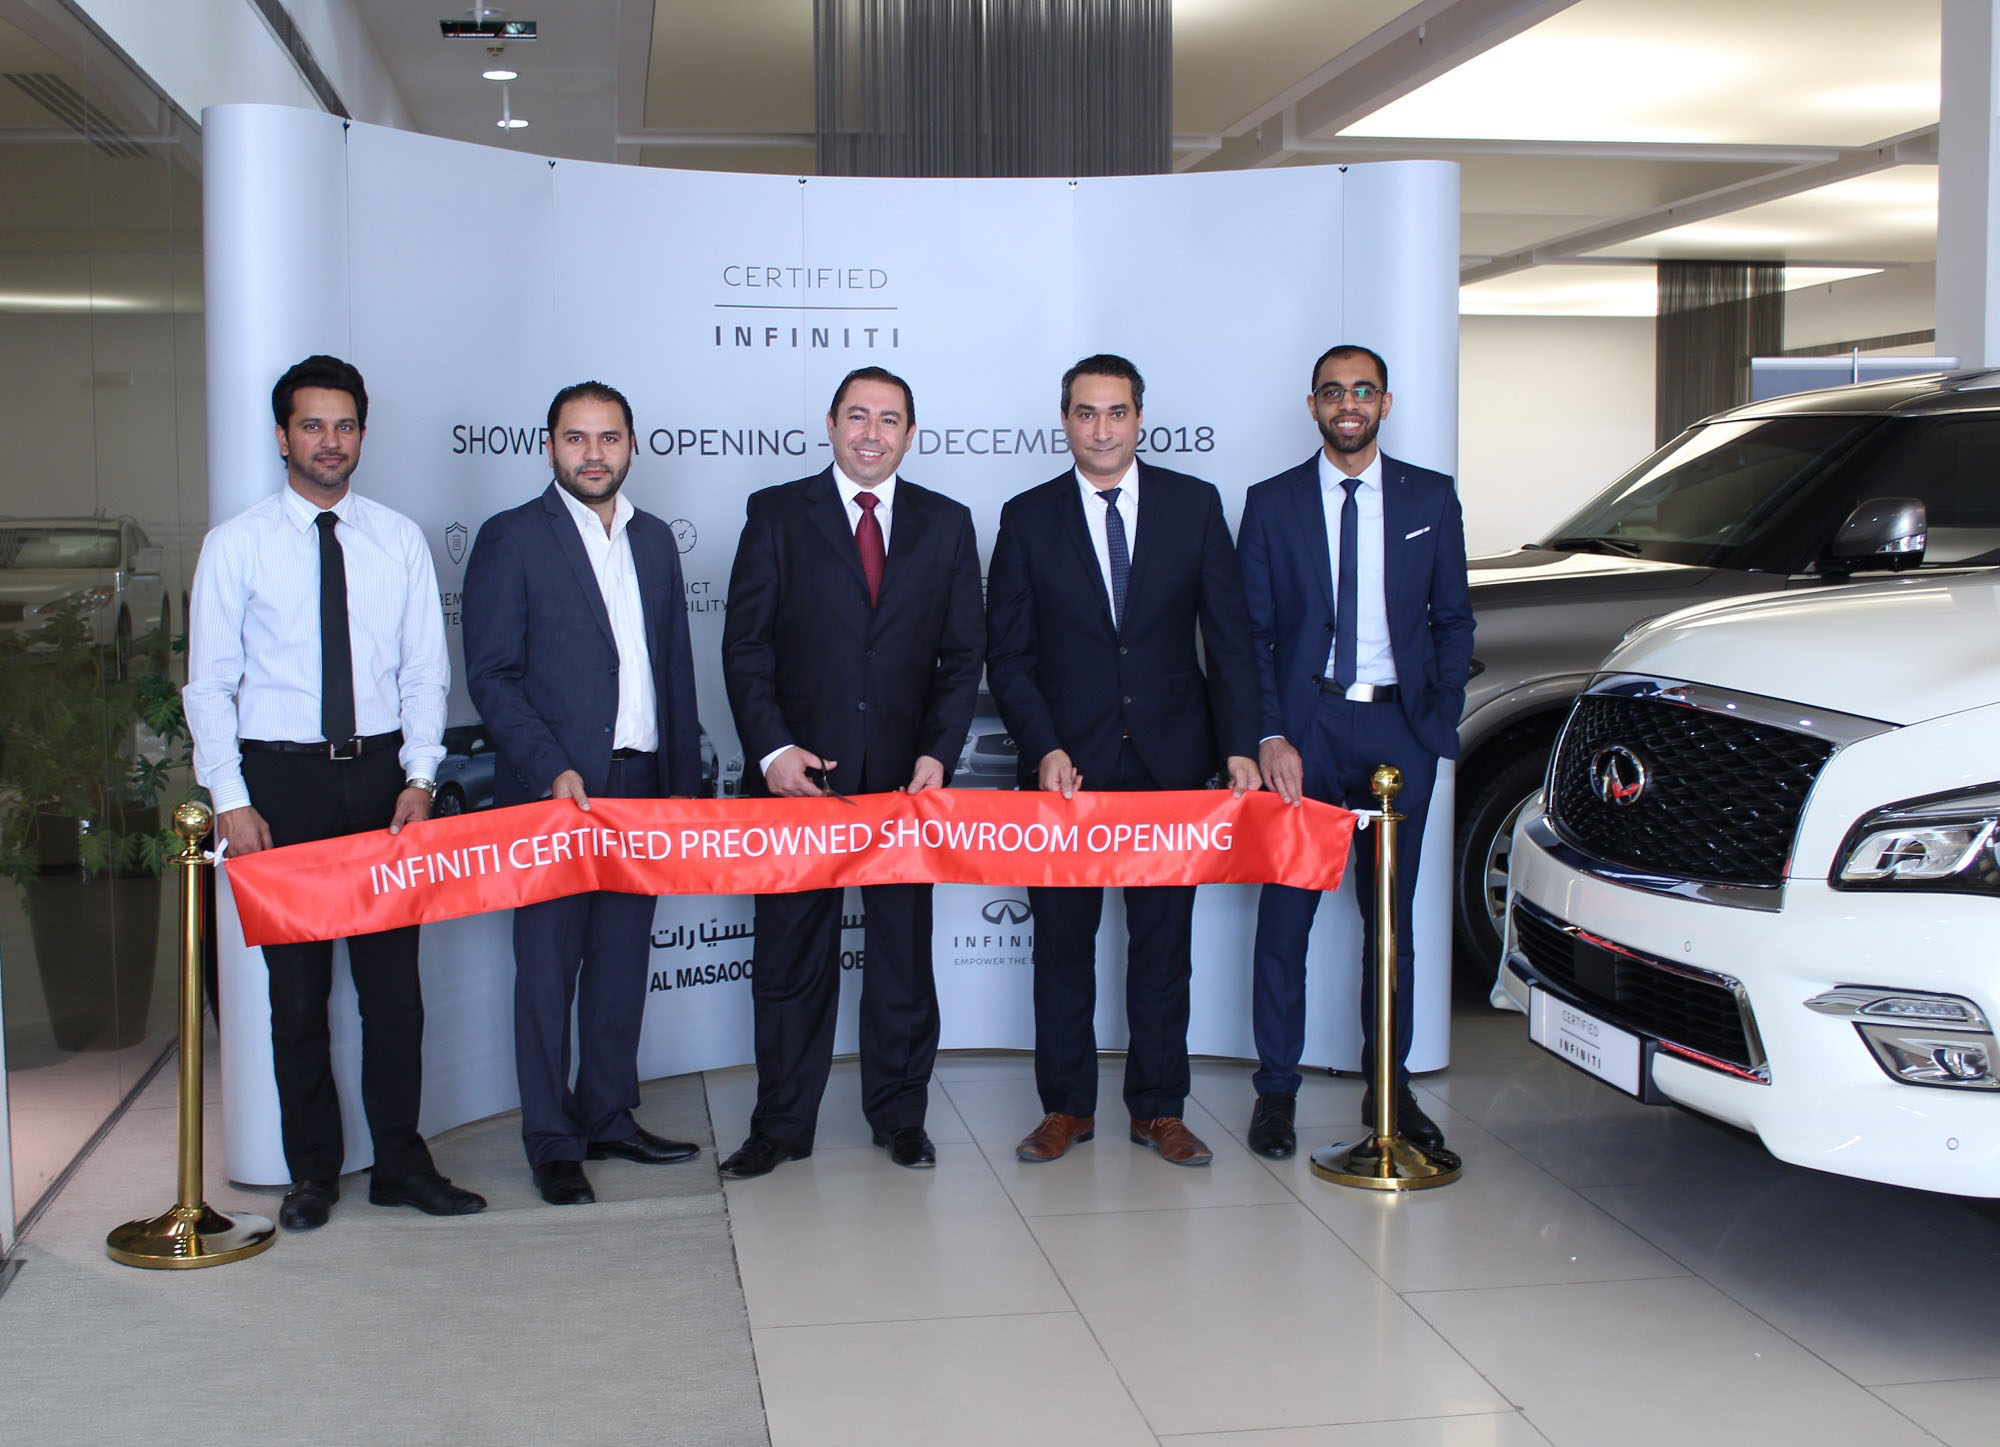 Al Masaood Automobiles Opens Pre-owned Infiniti Showroom in Abu Dhabi